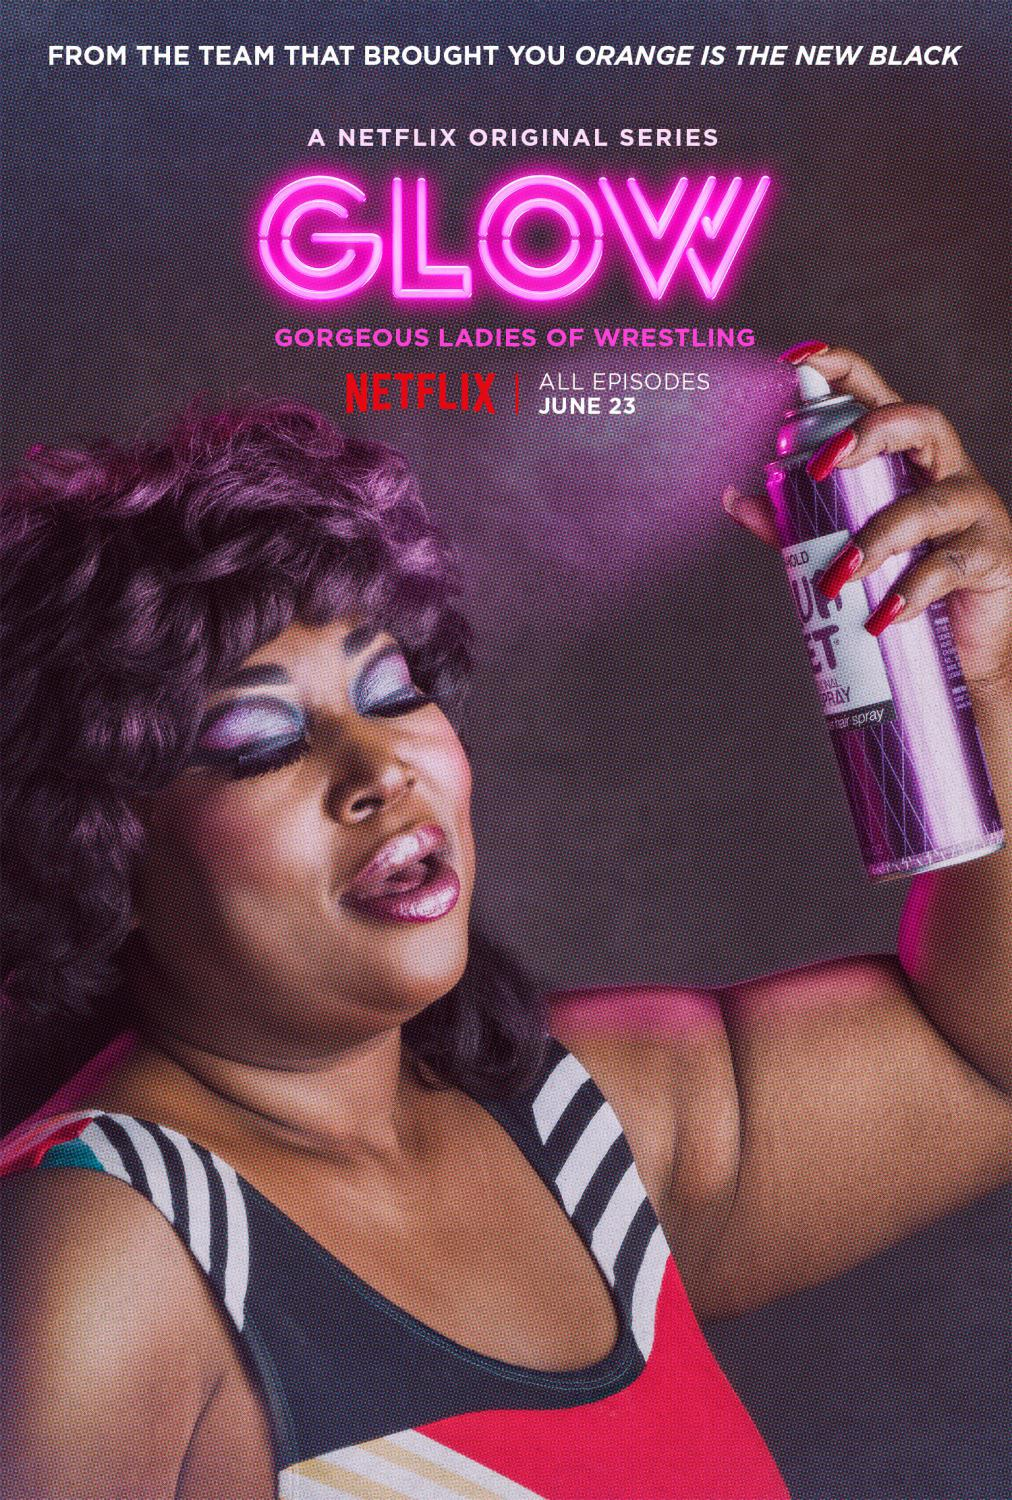 Series Netflix - GLOW - Gorgeous Ladies of Wrestling - air spray poster